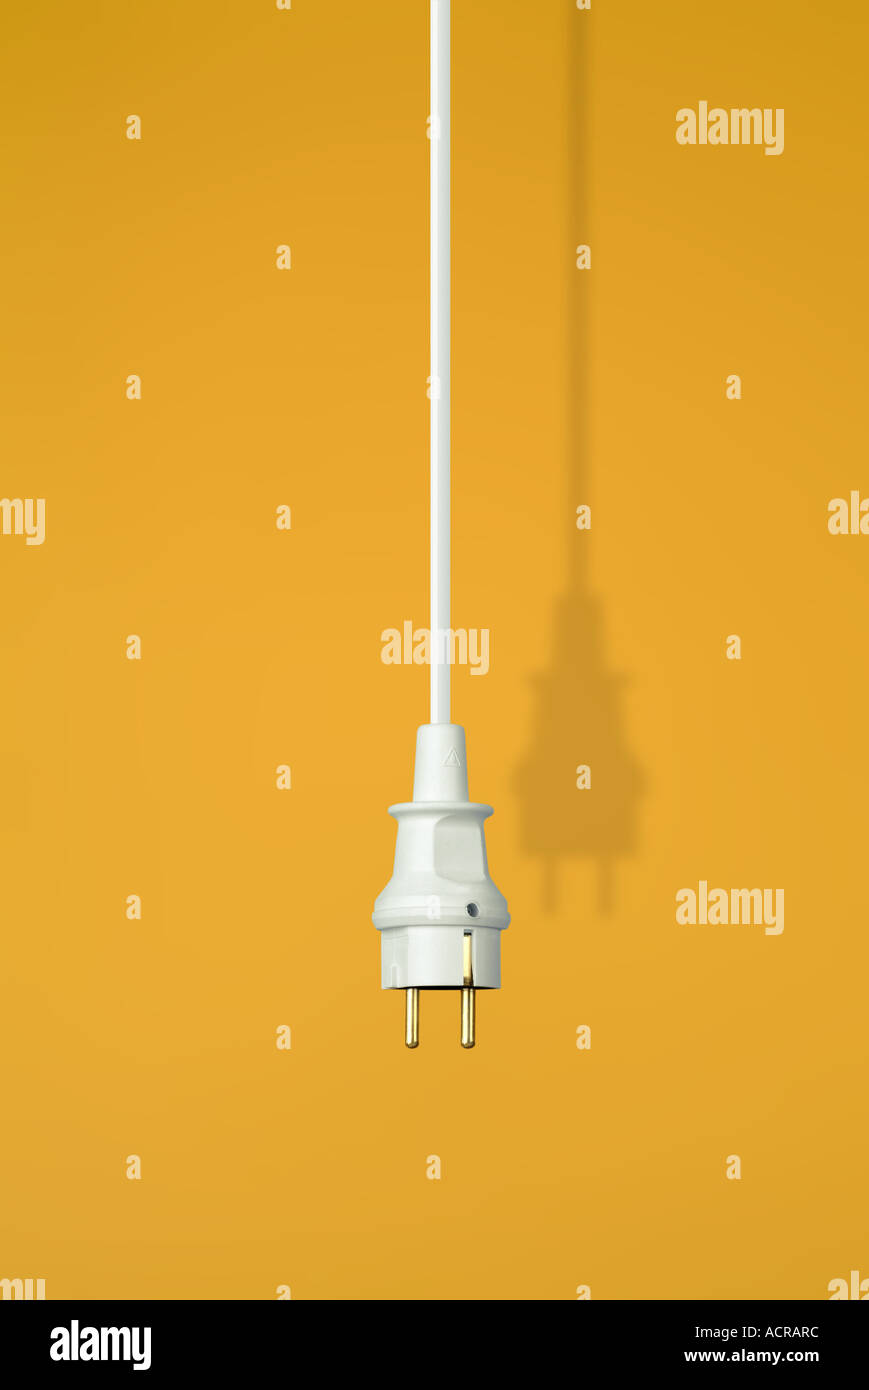 connector Stecker - Stock Image